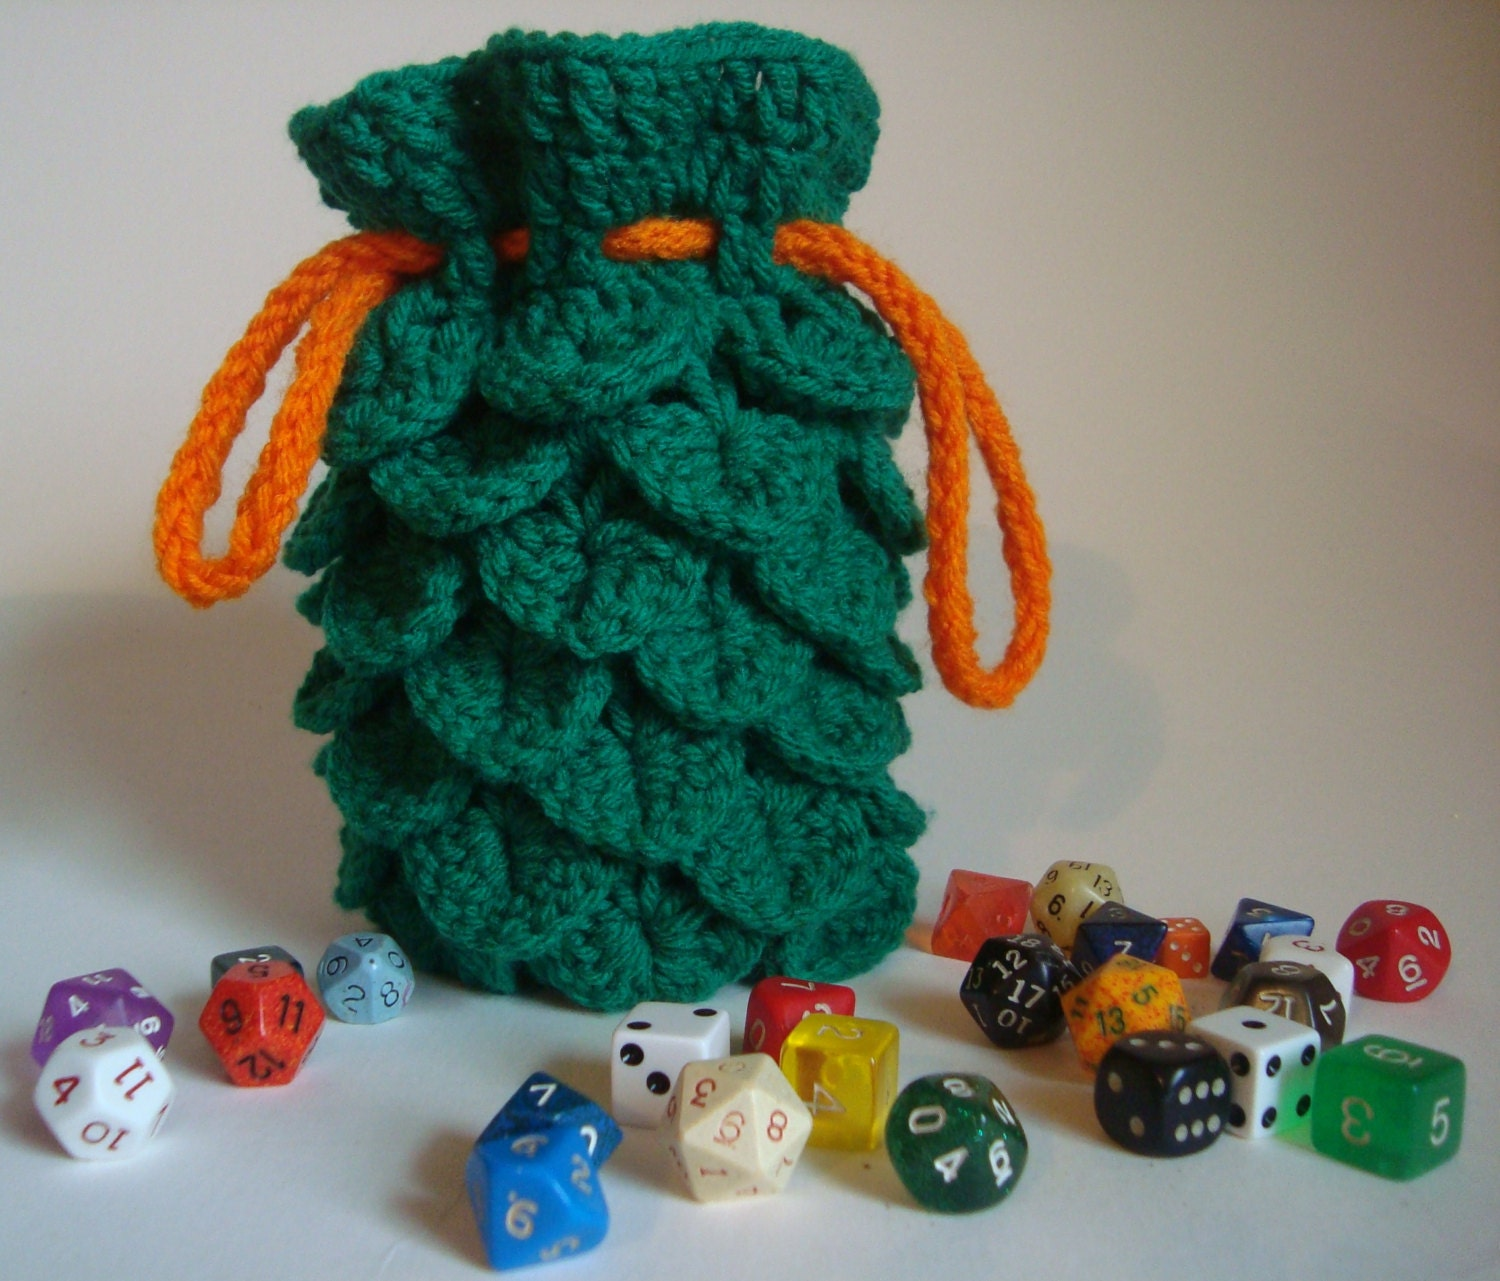 Dragon Dice Bag Crochet Pattern : Crochet Dragon Scale Dice Pouch/Bag with Drawstring Green